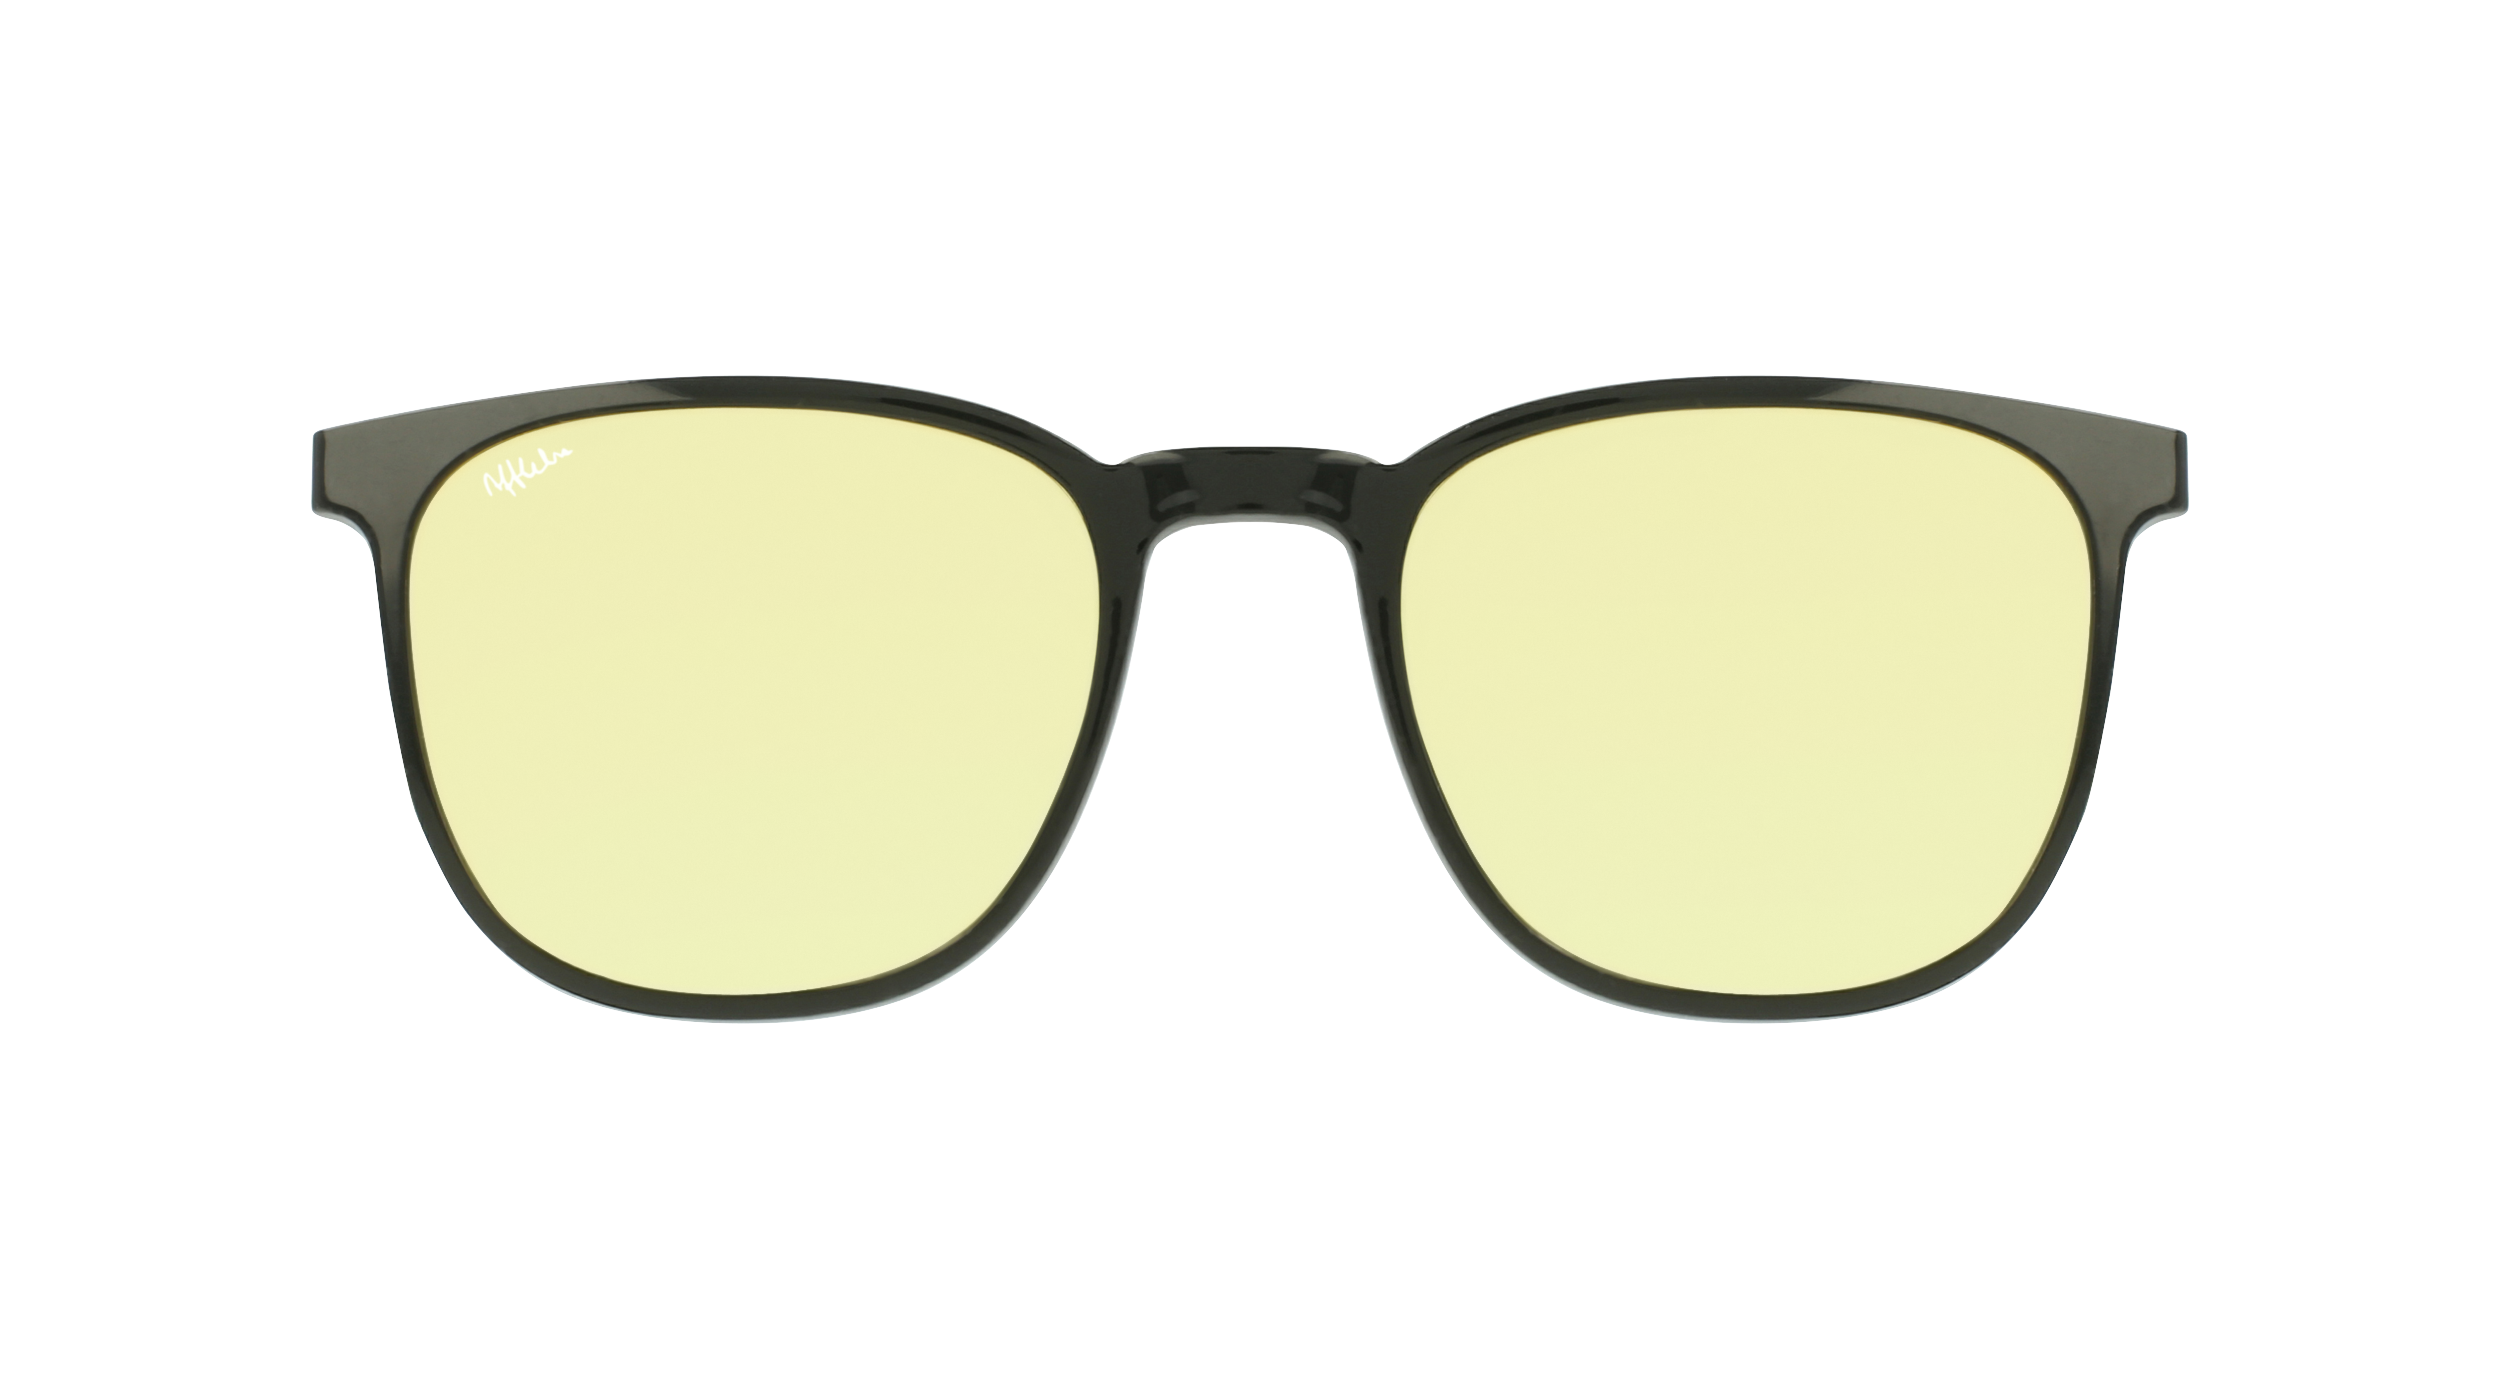 afflelou/france/products/smart_clip/clips_glasses/07630036457375.png